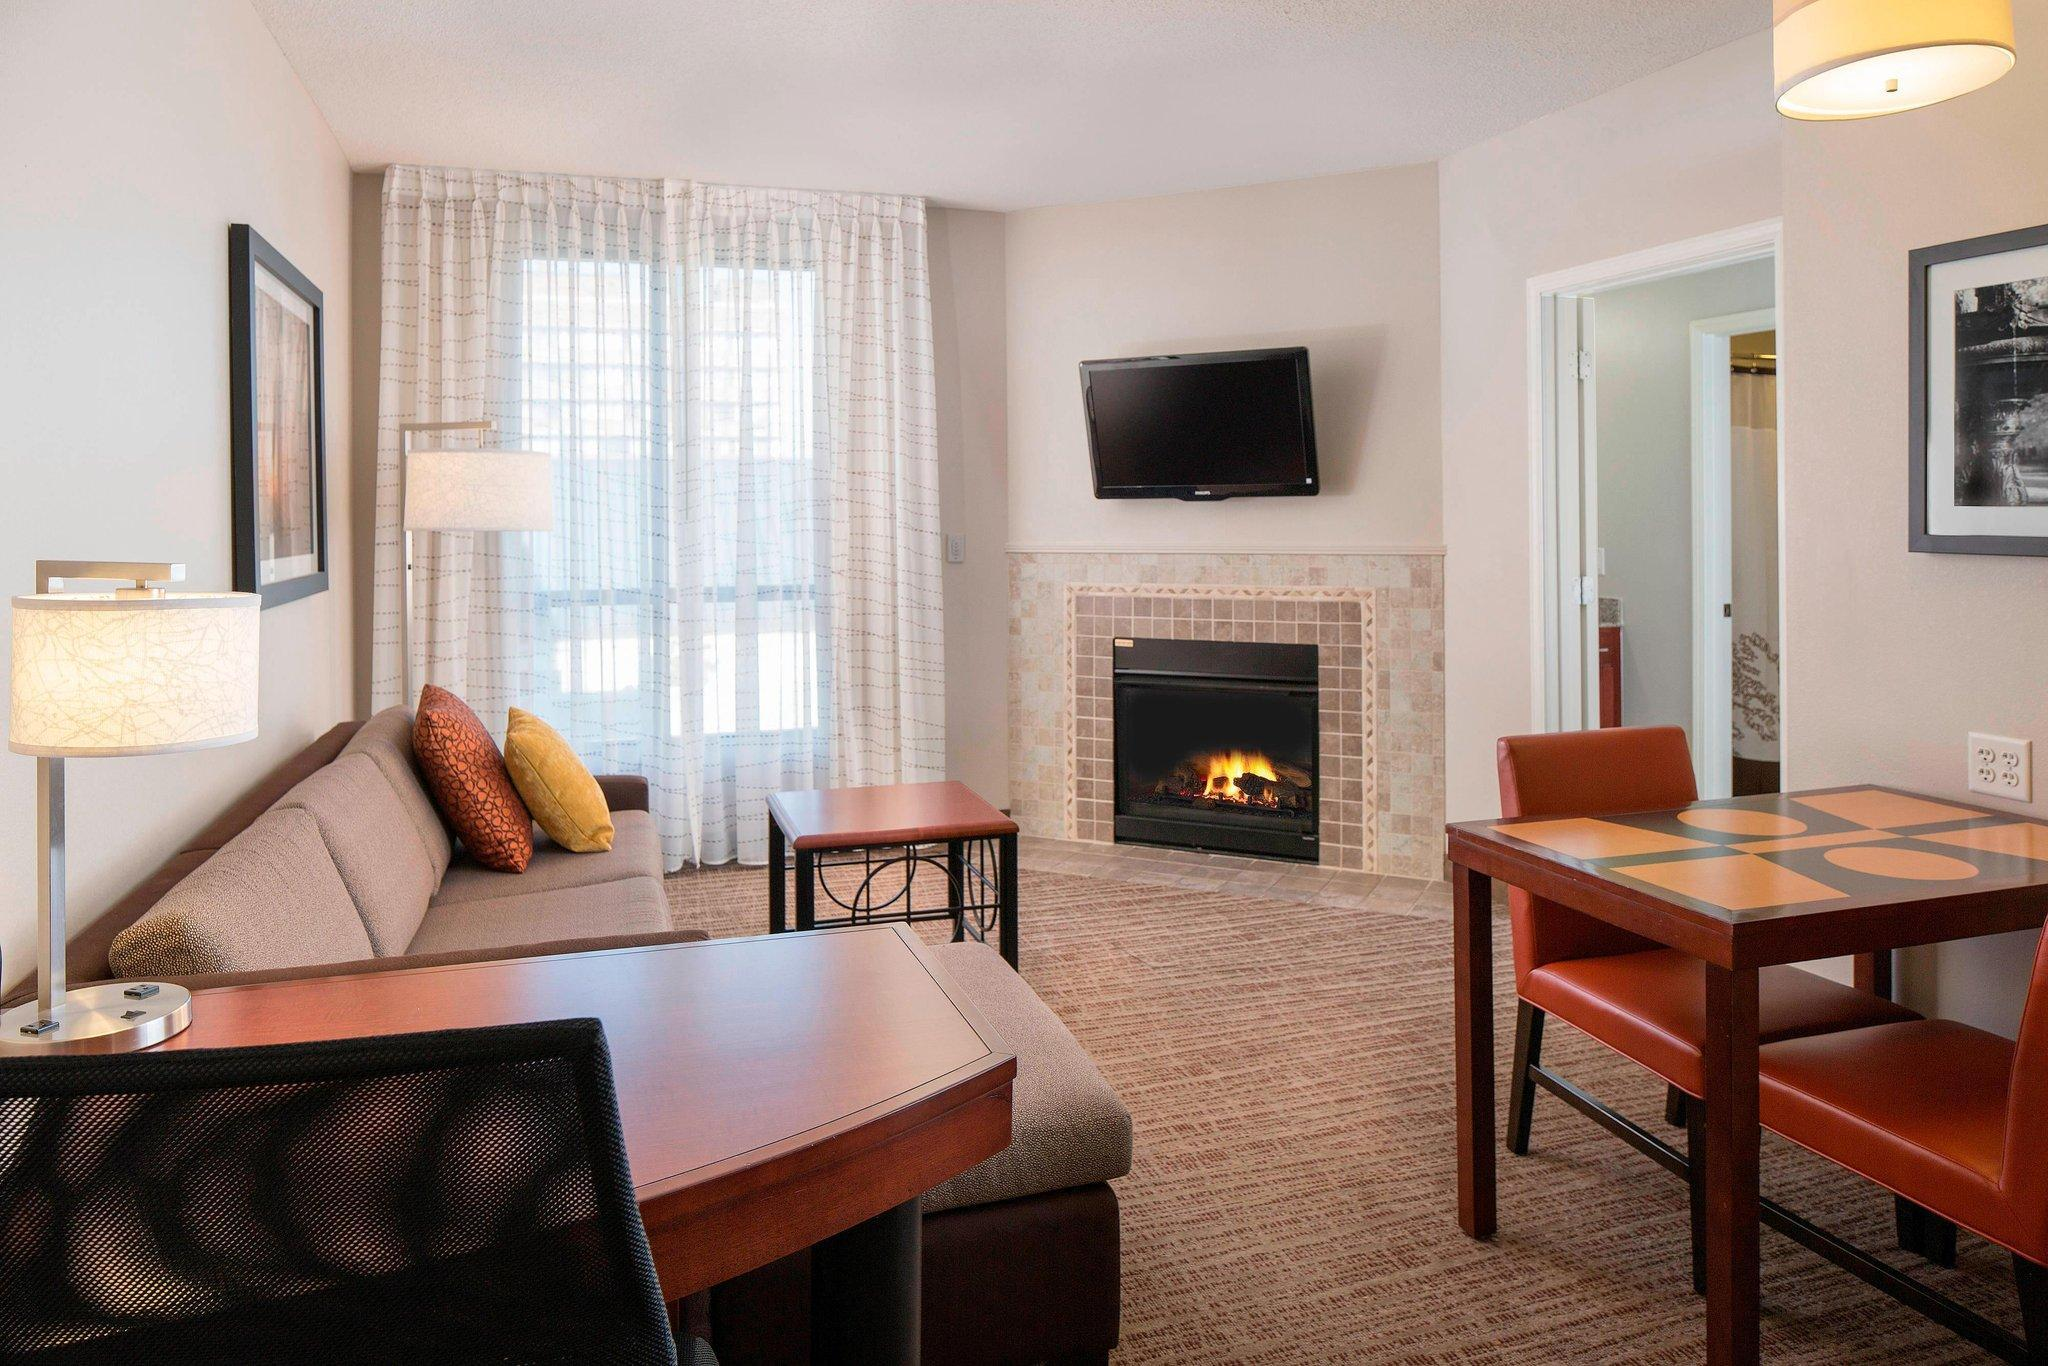 1 Bedroom with Fireplace, 1 Bedroom Suite, 1 King, Sofa bed